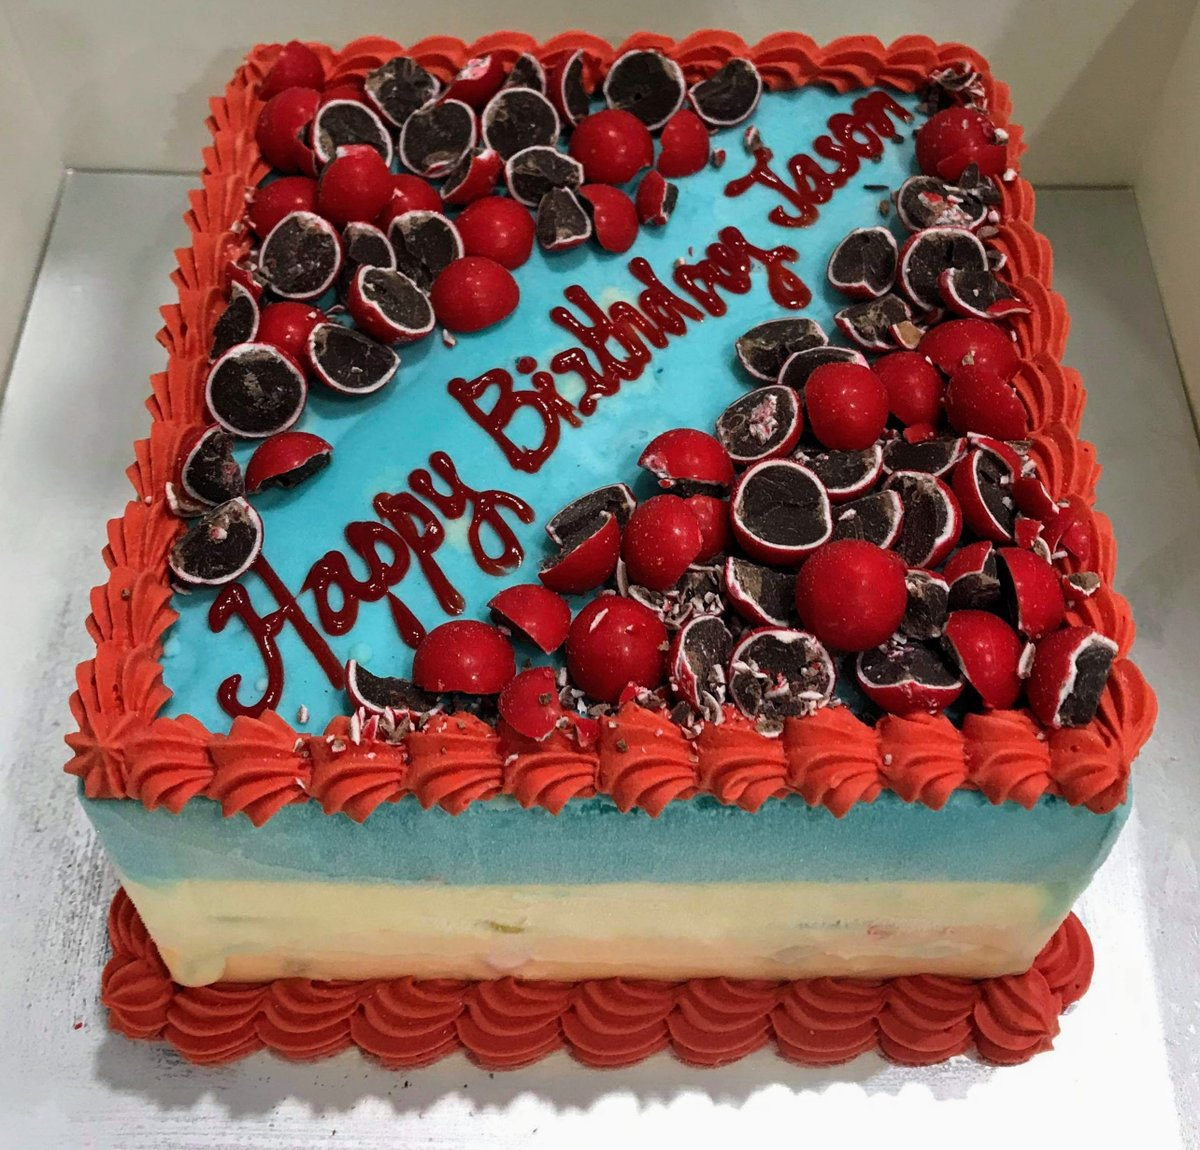 Ice Cream cake by Cold Rock Aspley. Call us on 0417 115 707 to place your order. #brisbane #coldrock #fridays #dessert #weddingcake #food #chocolate  #party #love #happybirthday #cake #celebrate #happy #drawing #relationships #icecreamcake https://t.co/67dP8q113I